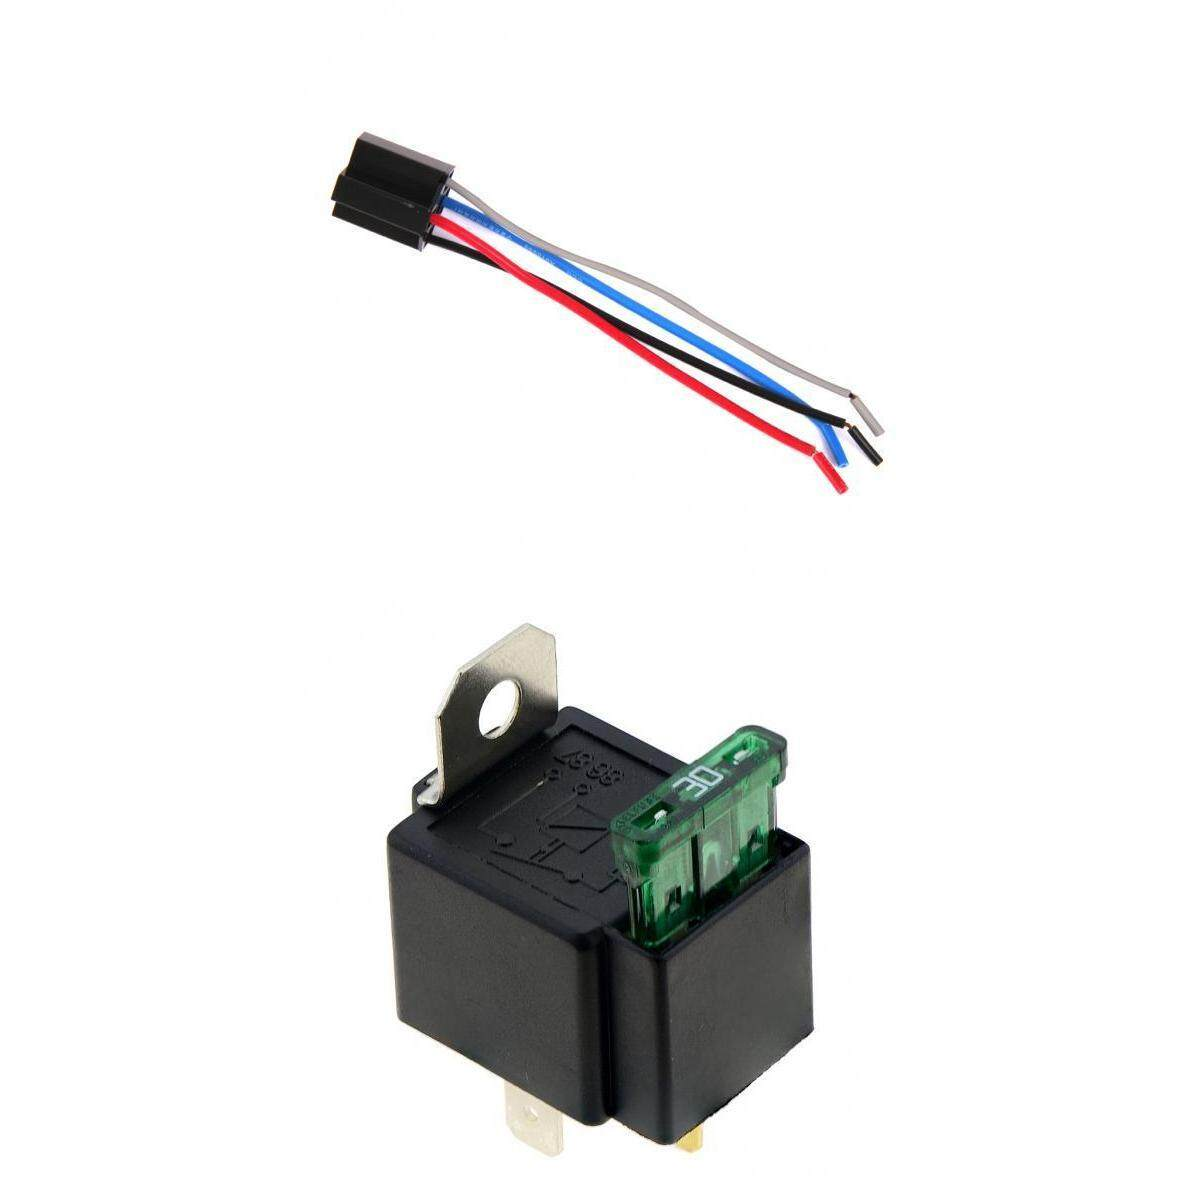 Features 4pcs Auto Car Waterproof 12v 50a 4pin Amp Relay W Wires 4 Pin And Socket Miracle Shining Automotive Normally Open 30a Fused With Wire Harness